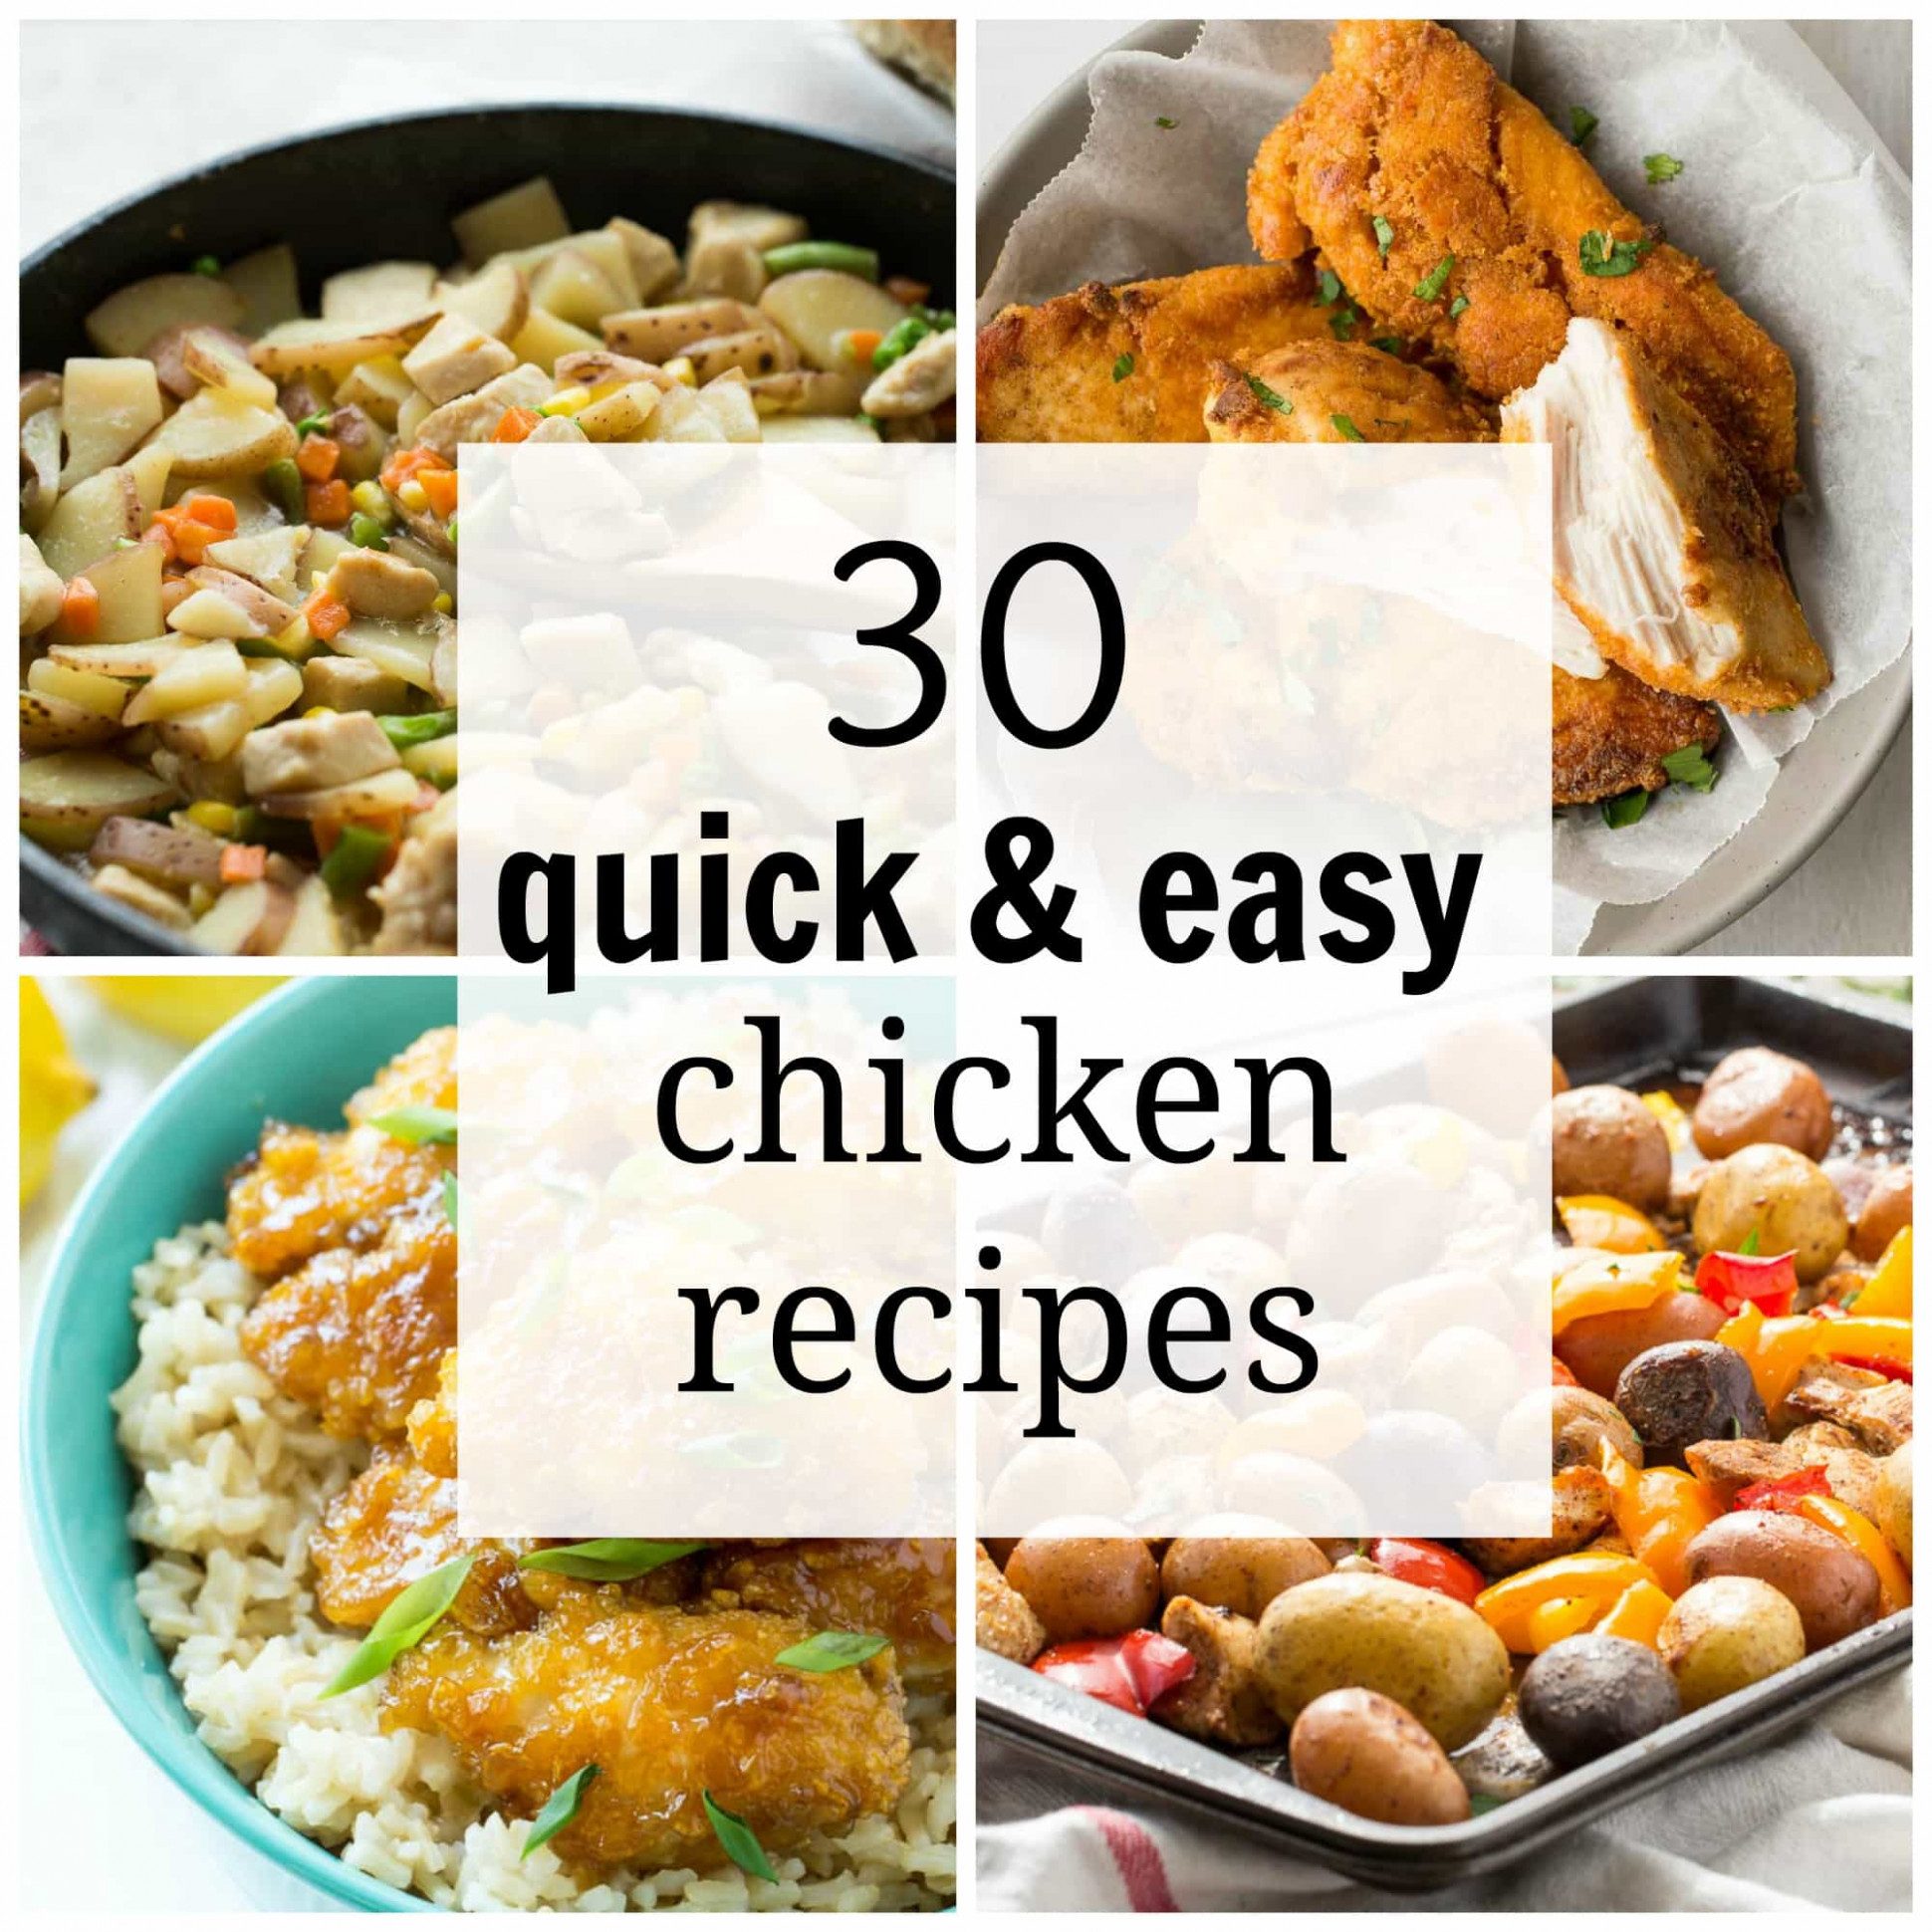 15 Quick and Easy Chicken Recipes for Busy Weeknights - chicken recipes quick and easy for dinner